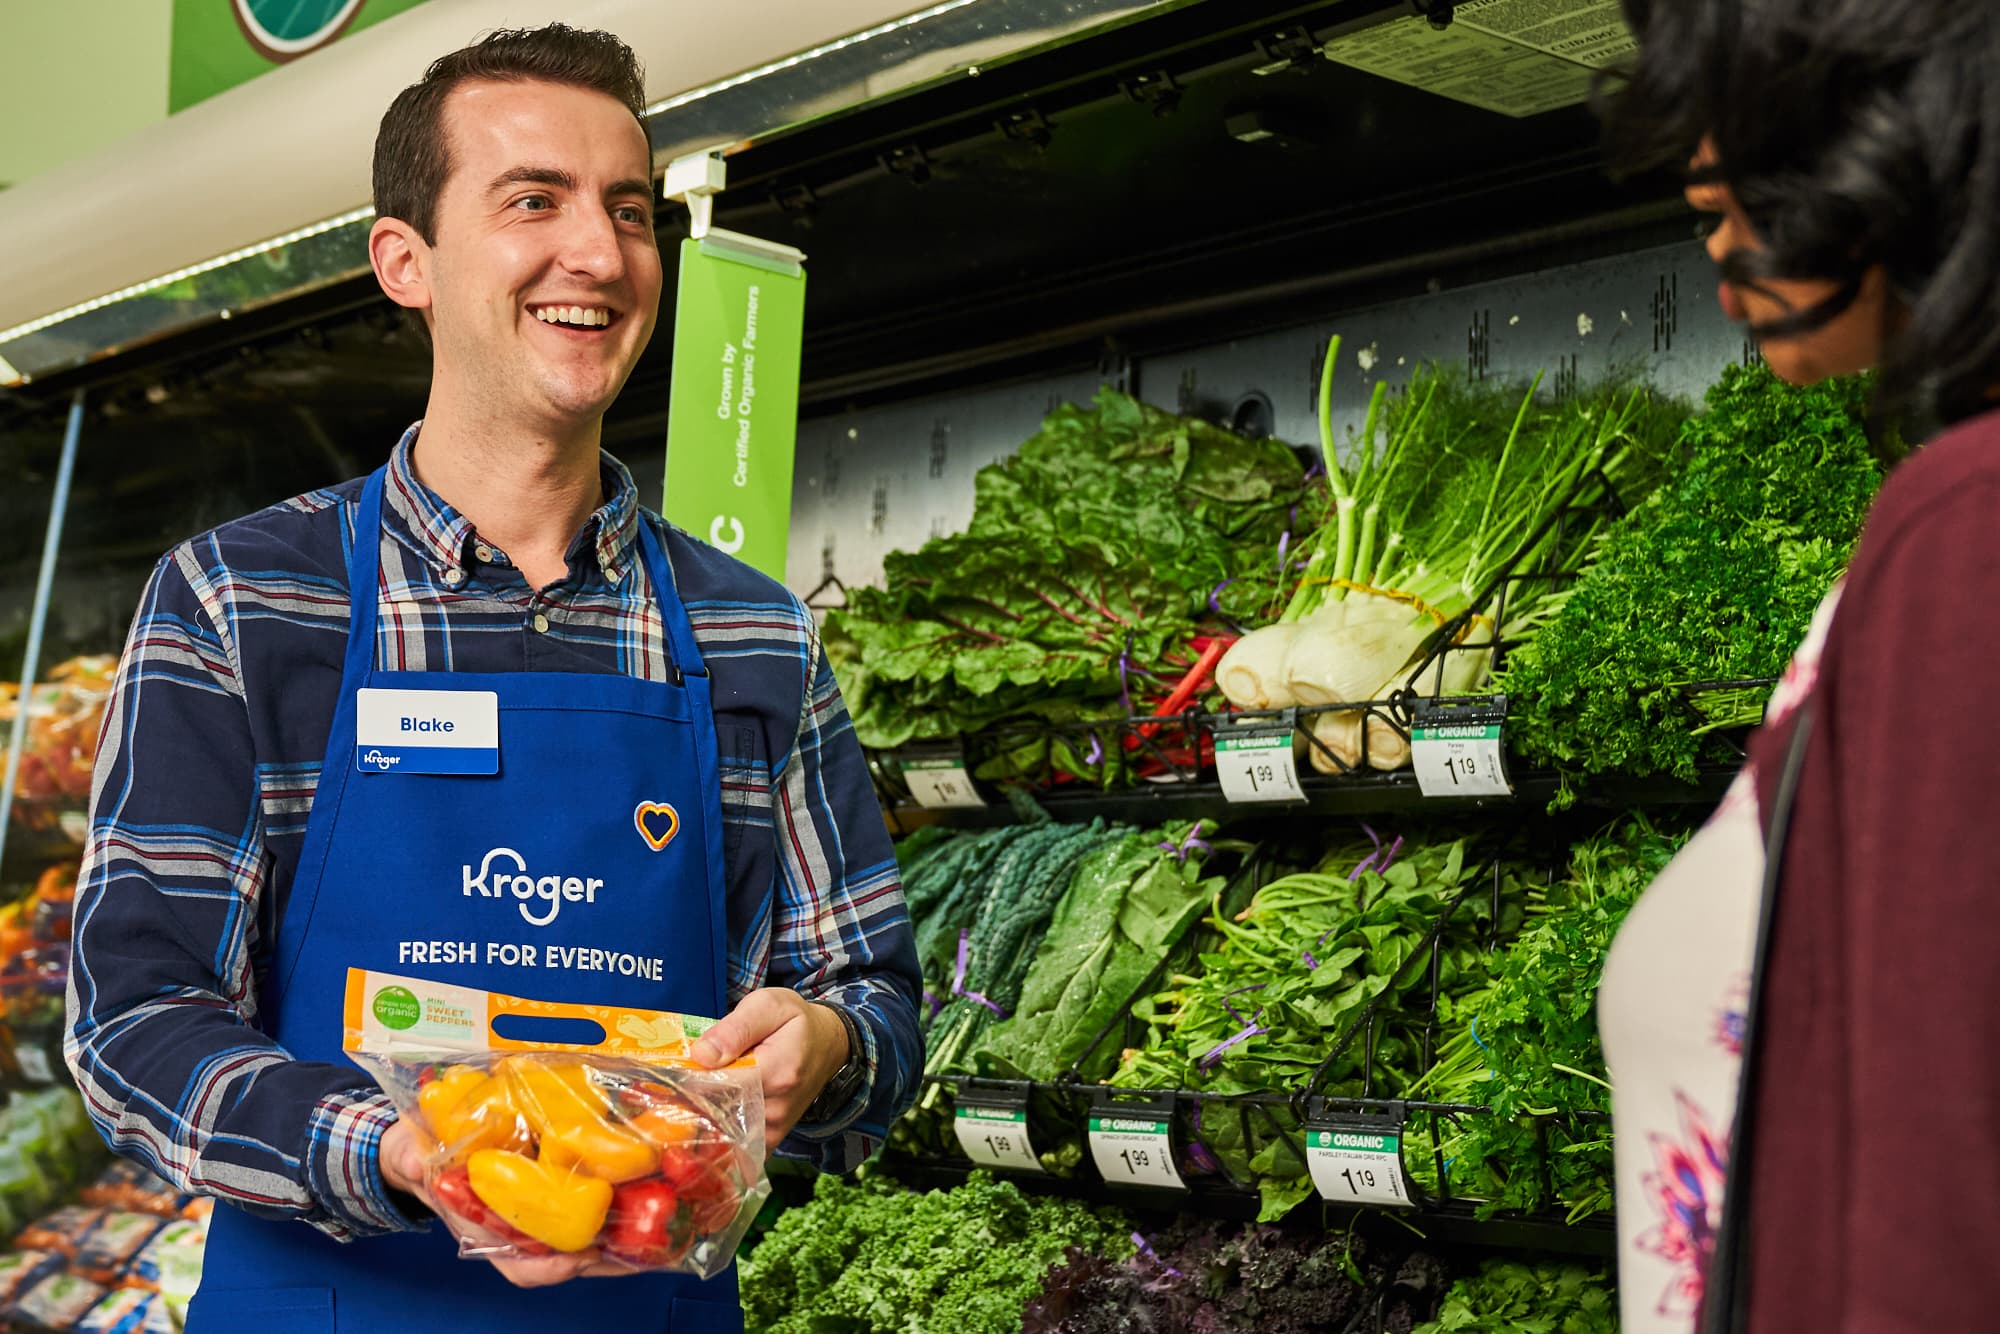 Kroger is rebranding with a new logo and slogan